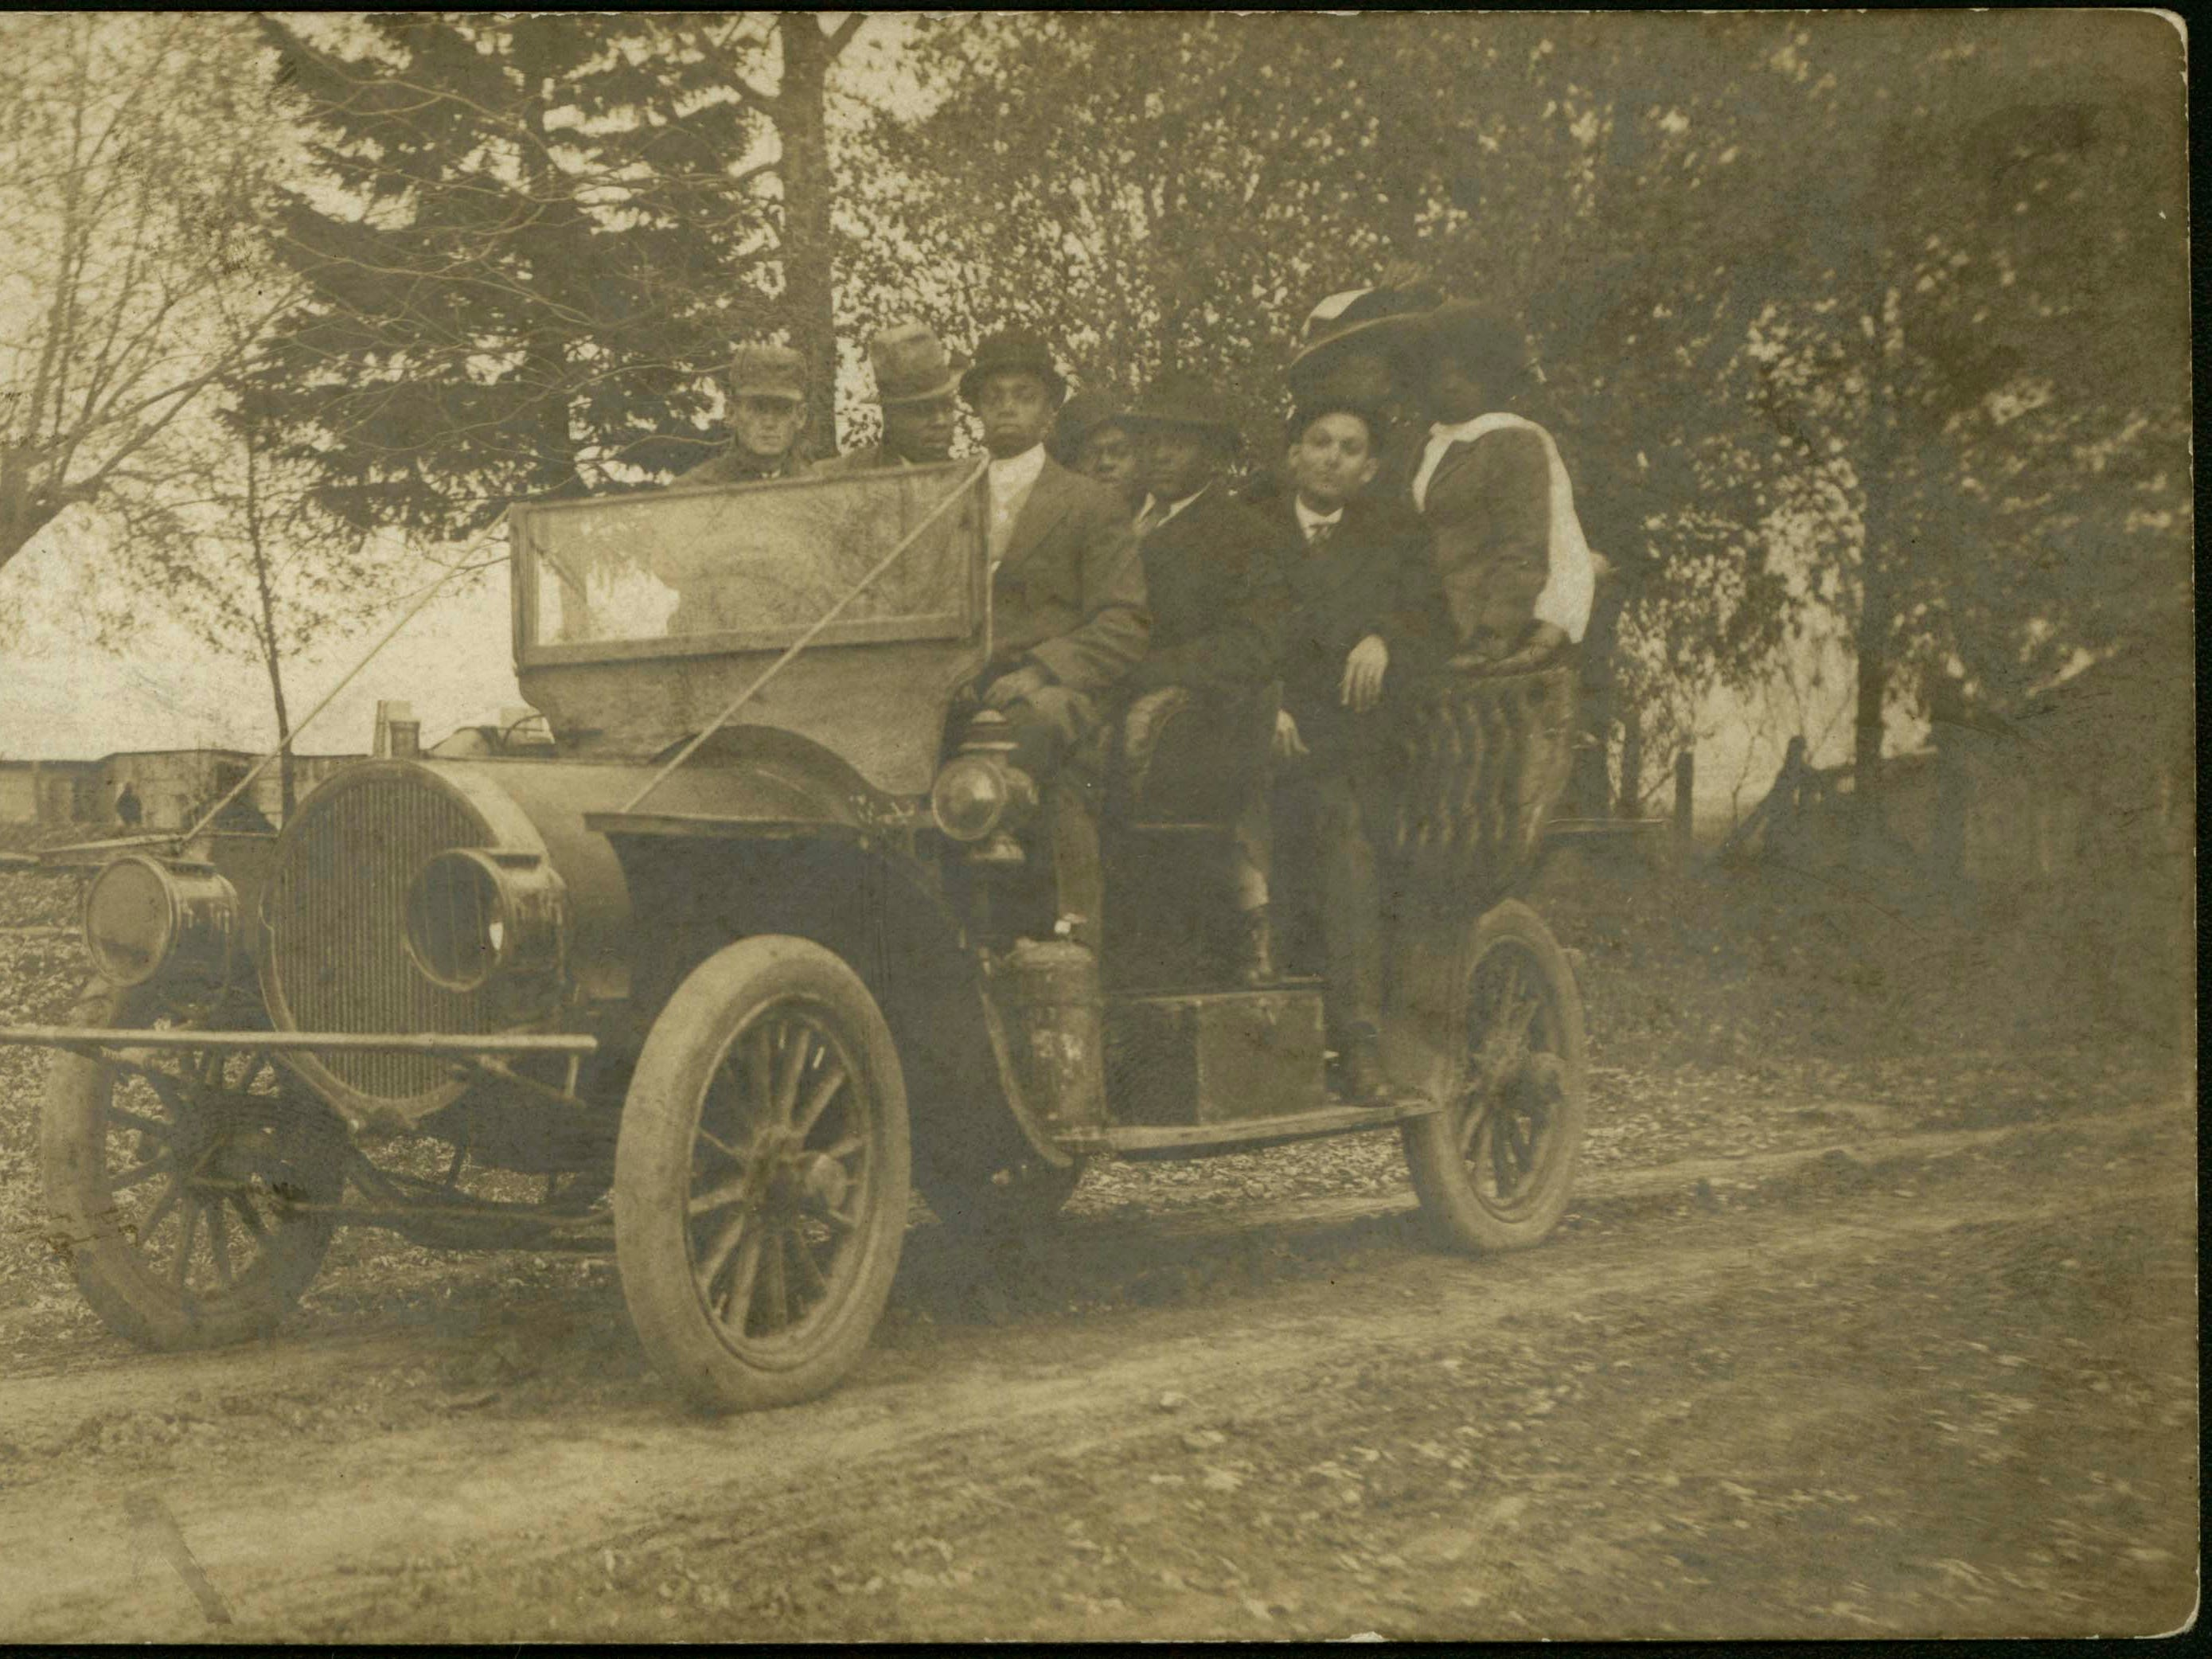 Residents of Buxton in a Reo automobile, about 1910.